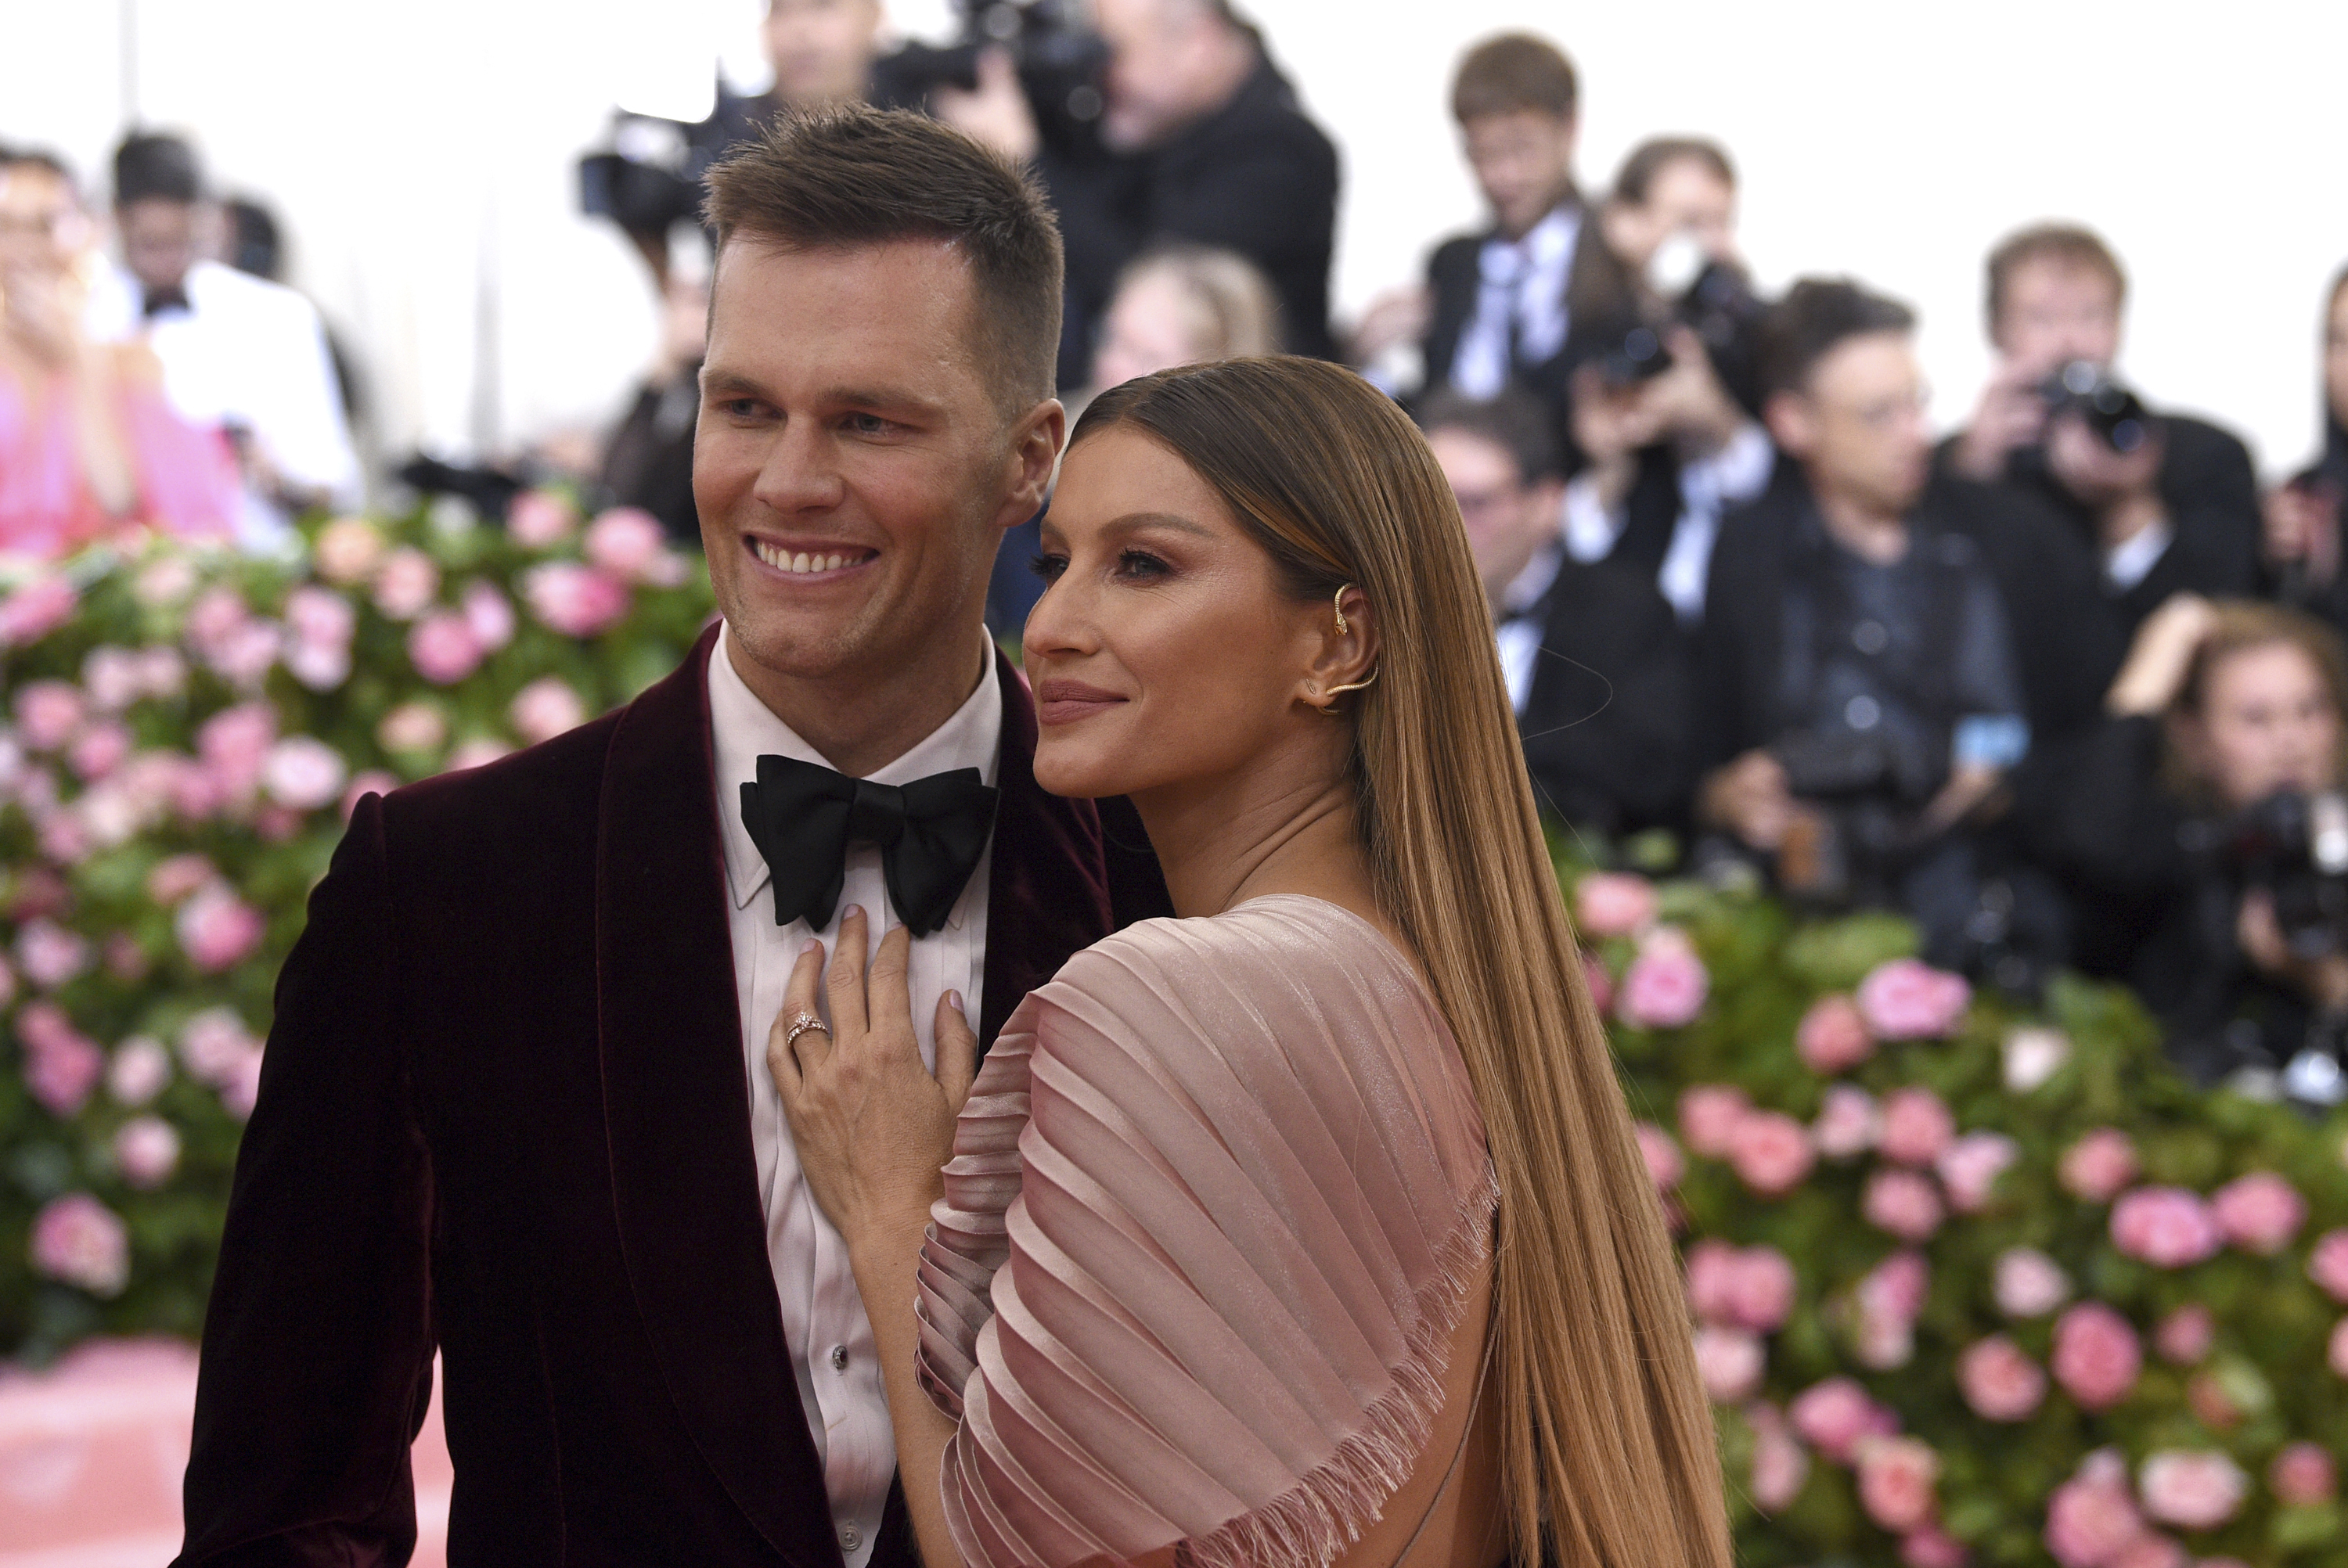 Sorry, N.J., but Patriots' Tom Brady and Gisele Bundchen won't be moving to the Garden State